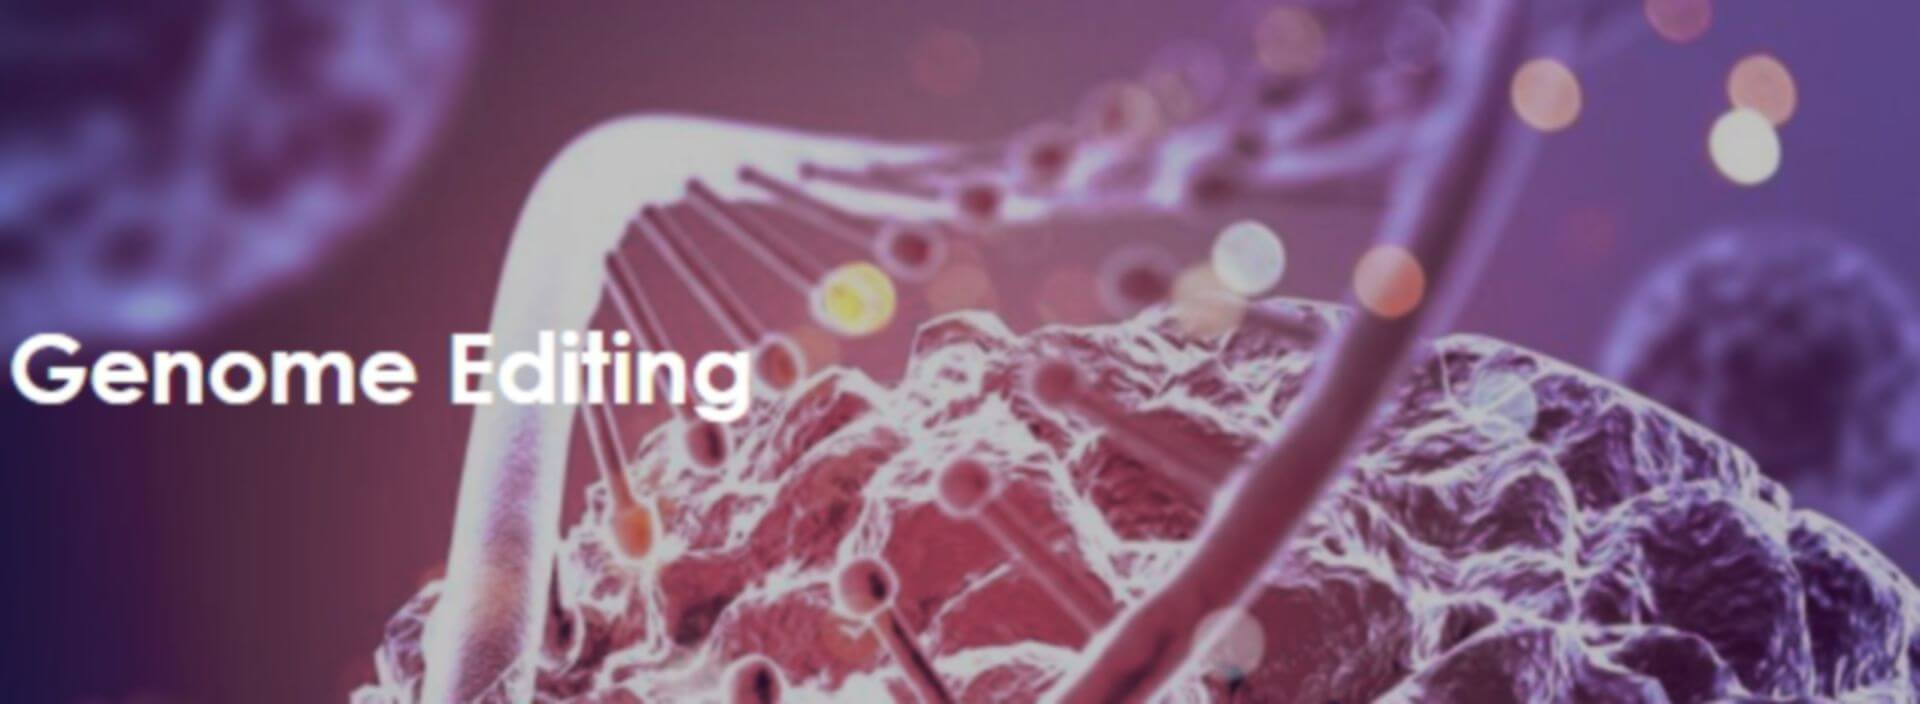 Introduction to Genome Editing